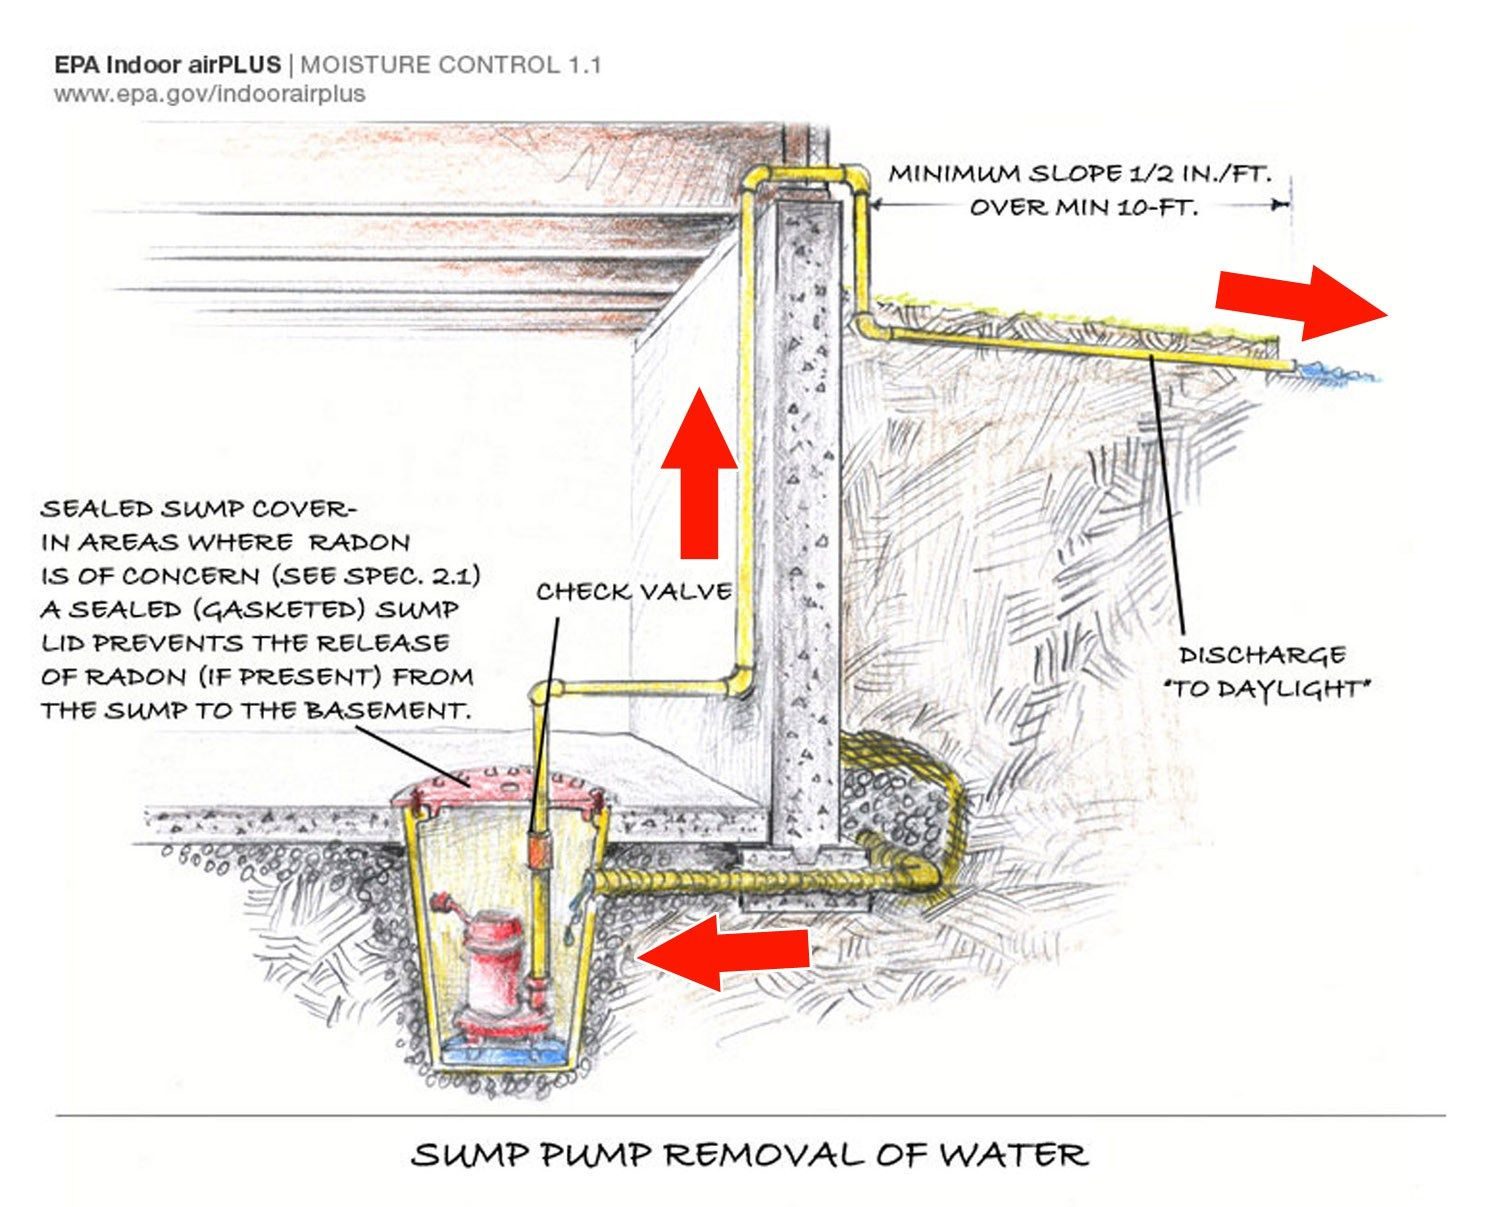 How do you use a pump to remove water from a basement?